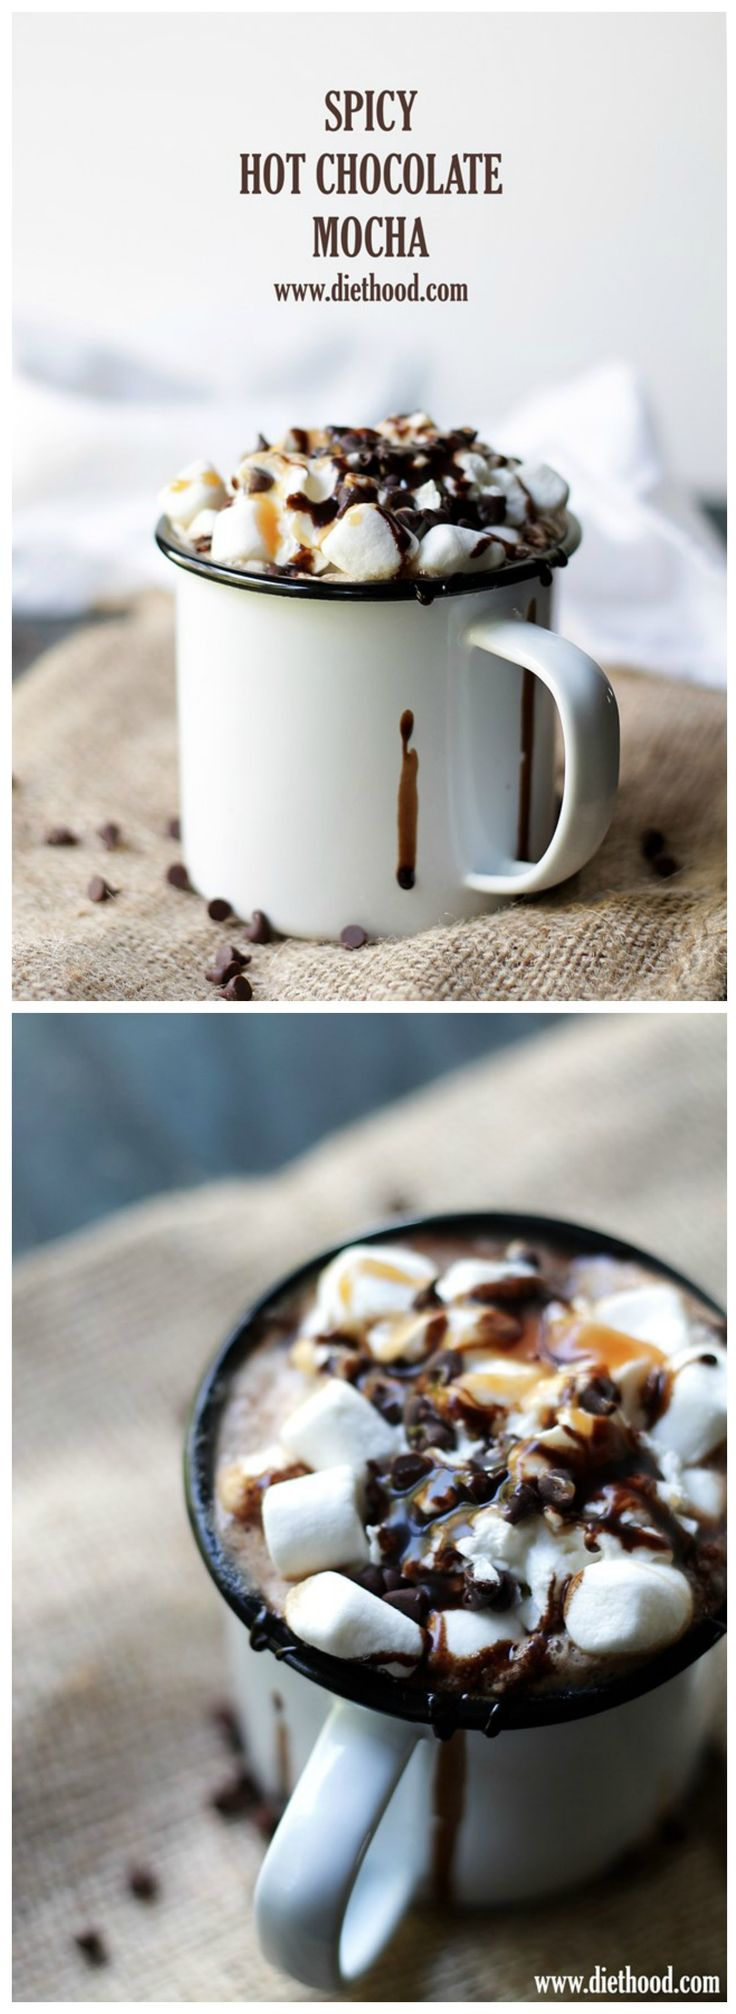 Coffee, cocoa, cinnamon, nutmeg and cayenne pepper come together in this delicious Spicy Hot Chocolate Mocha drink.